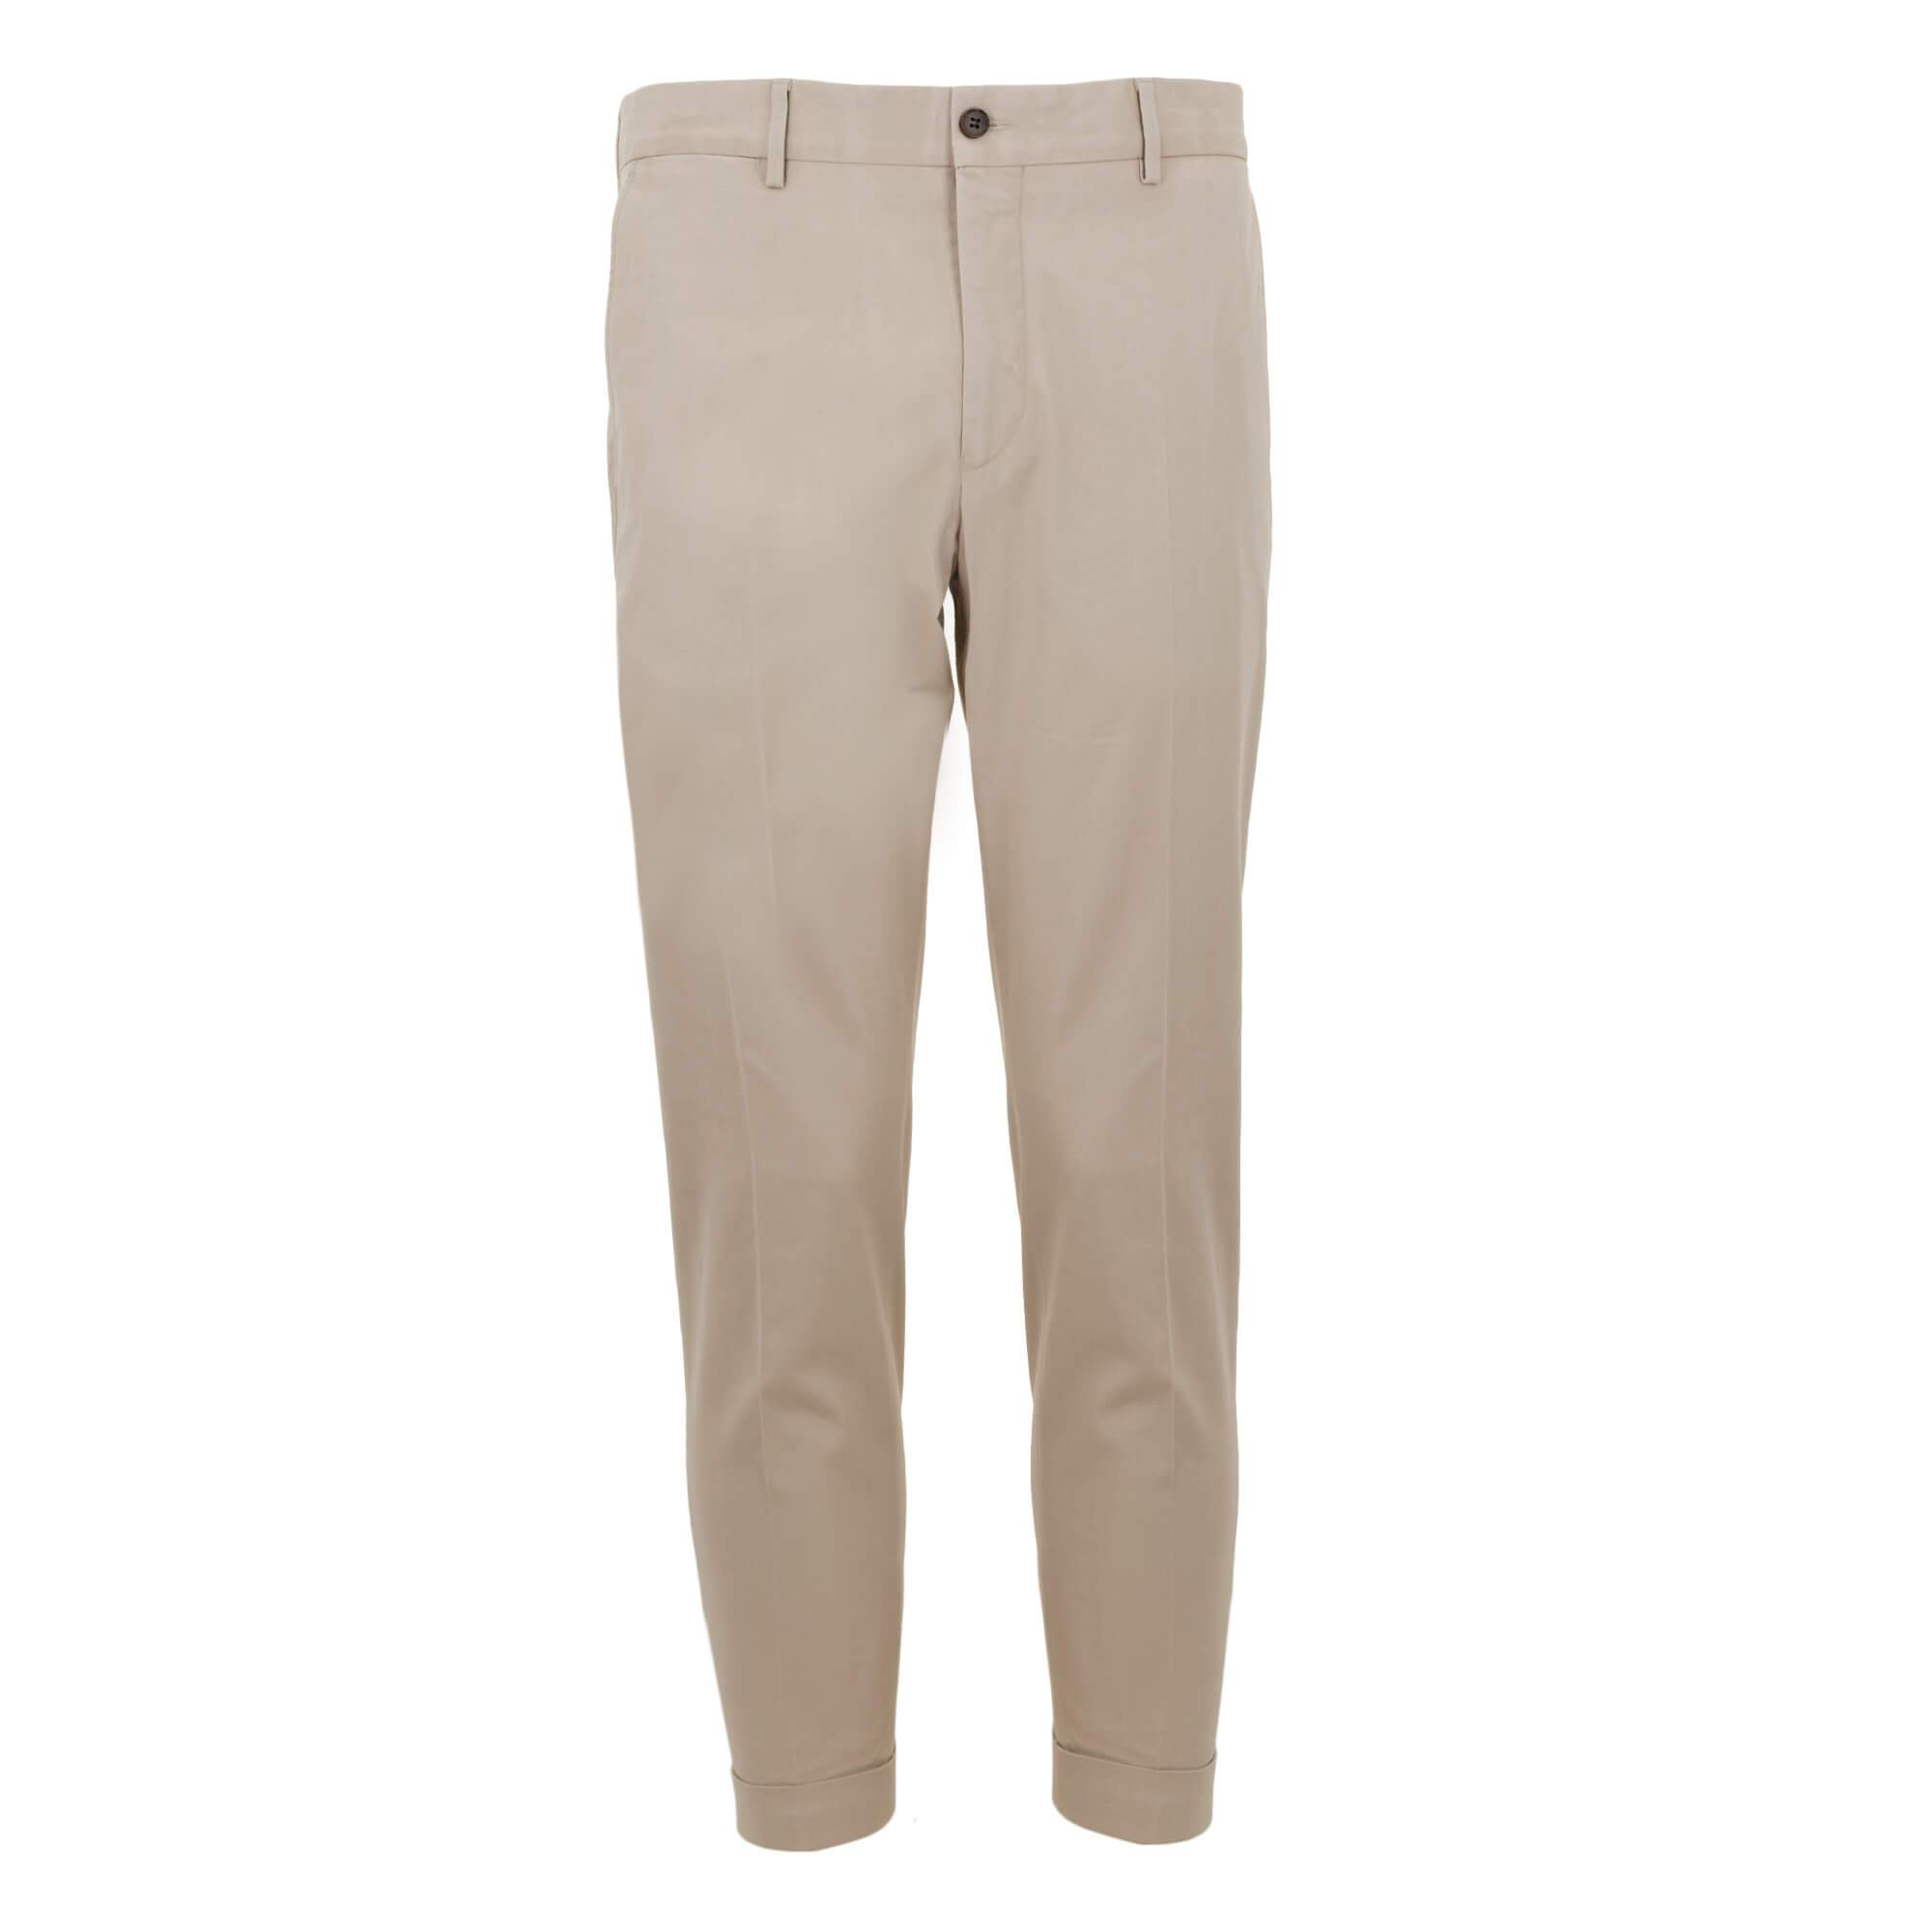 Pantalón chino con corte slim fit 911178/81